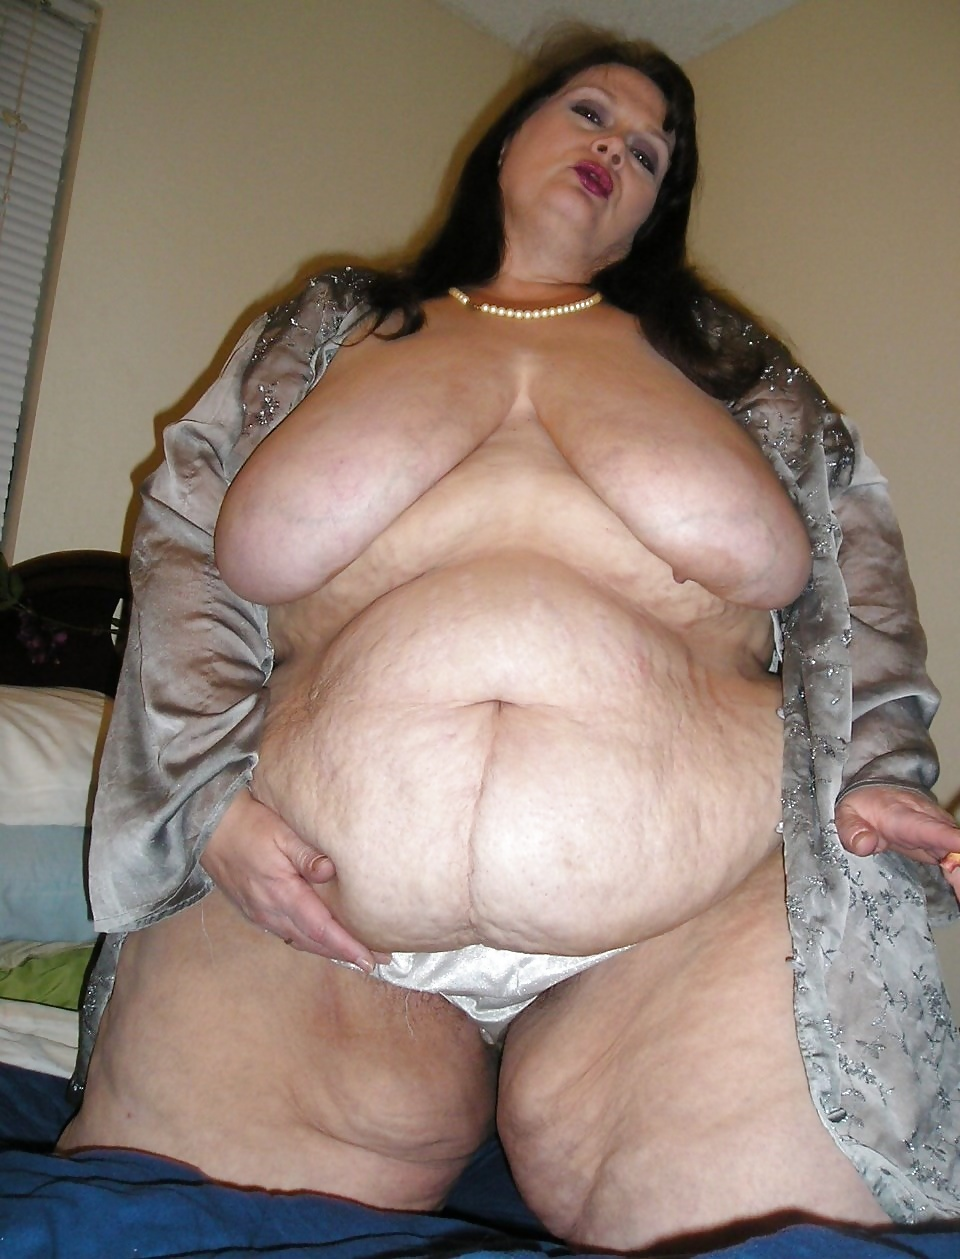 Big Fat Old Hairy Pussy